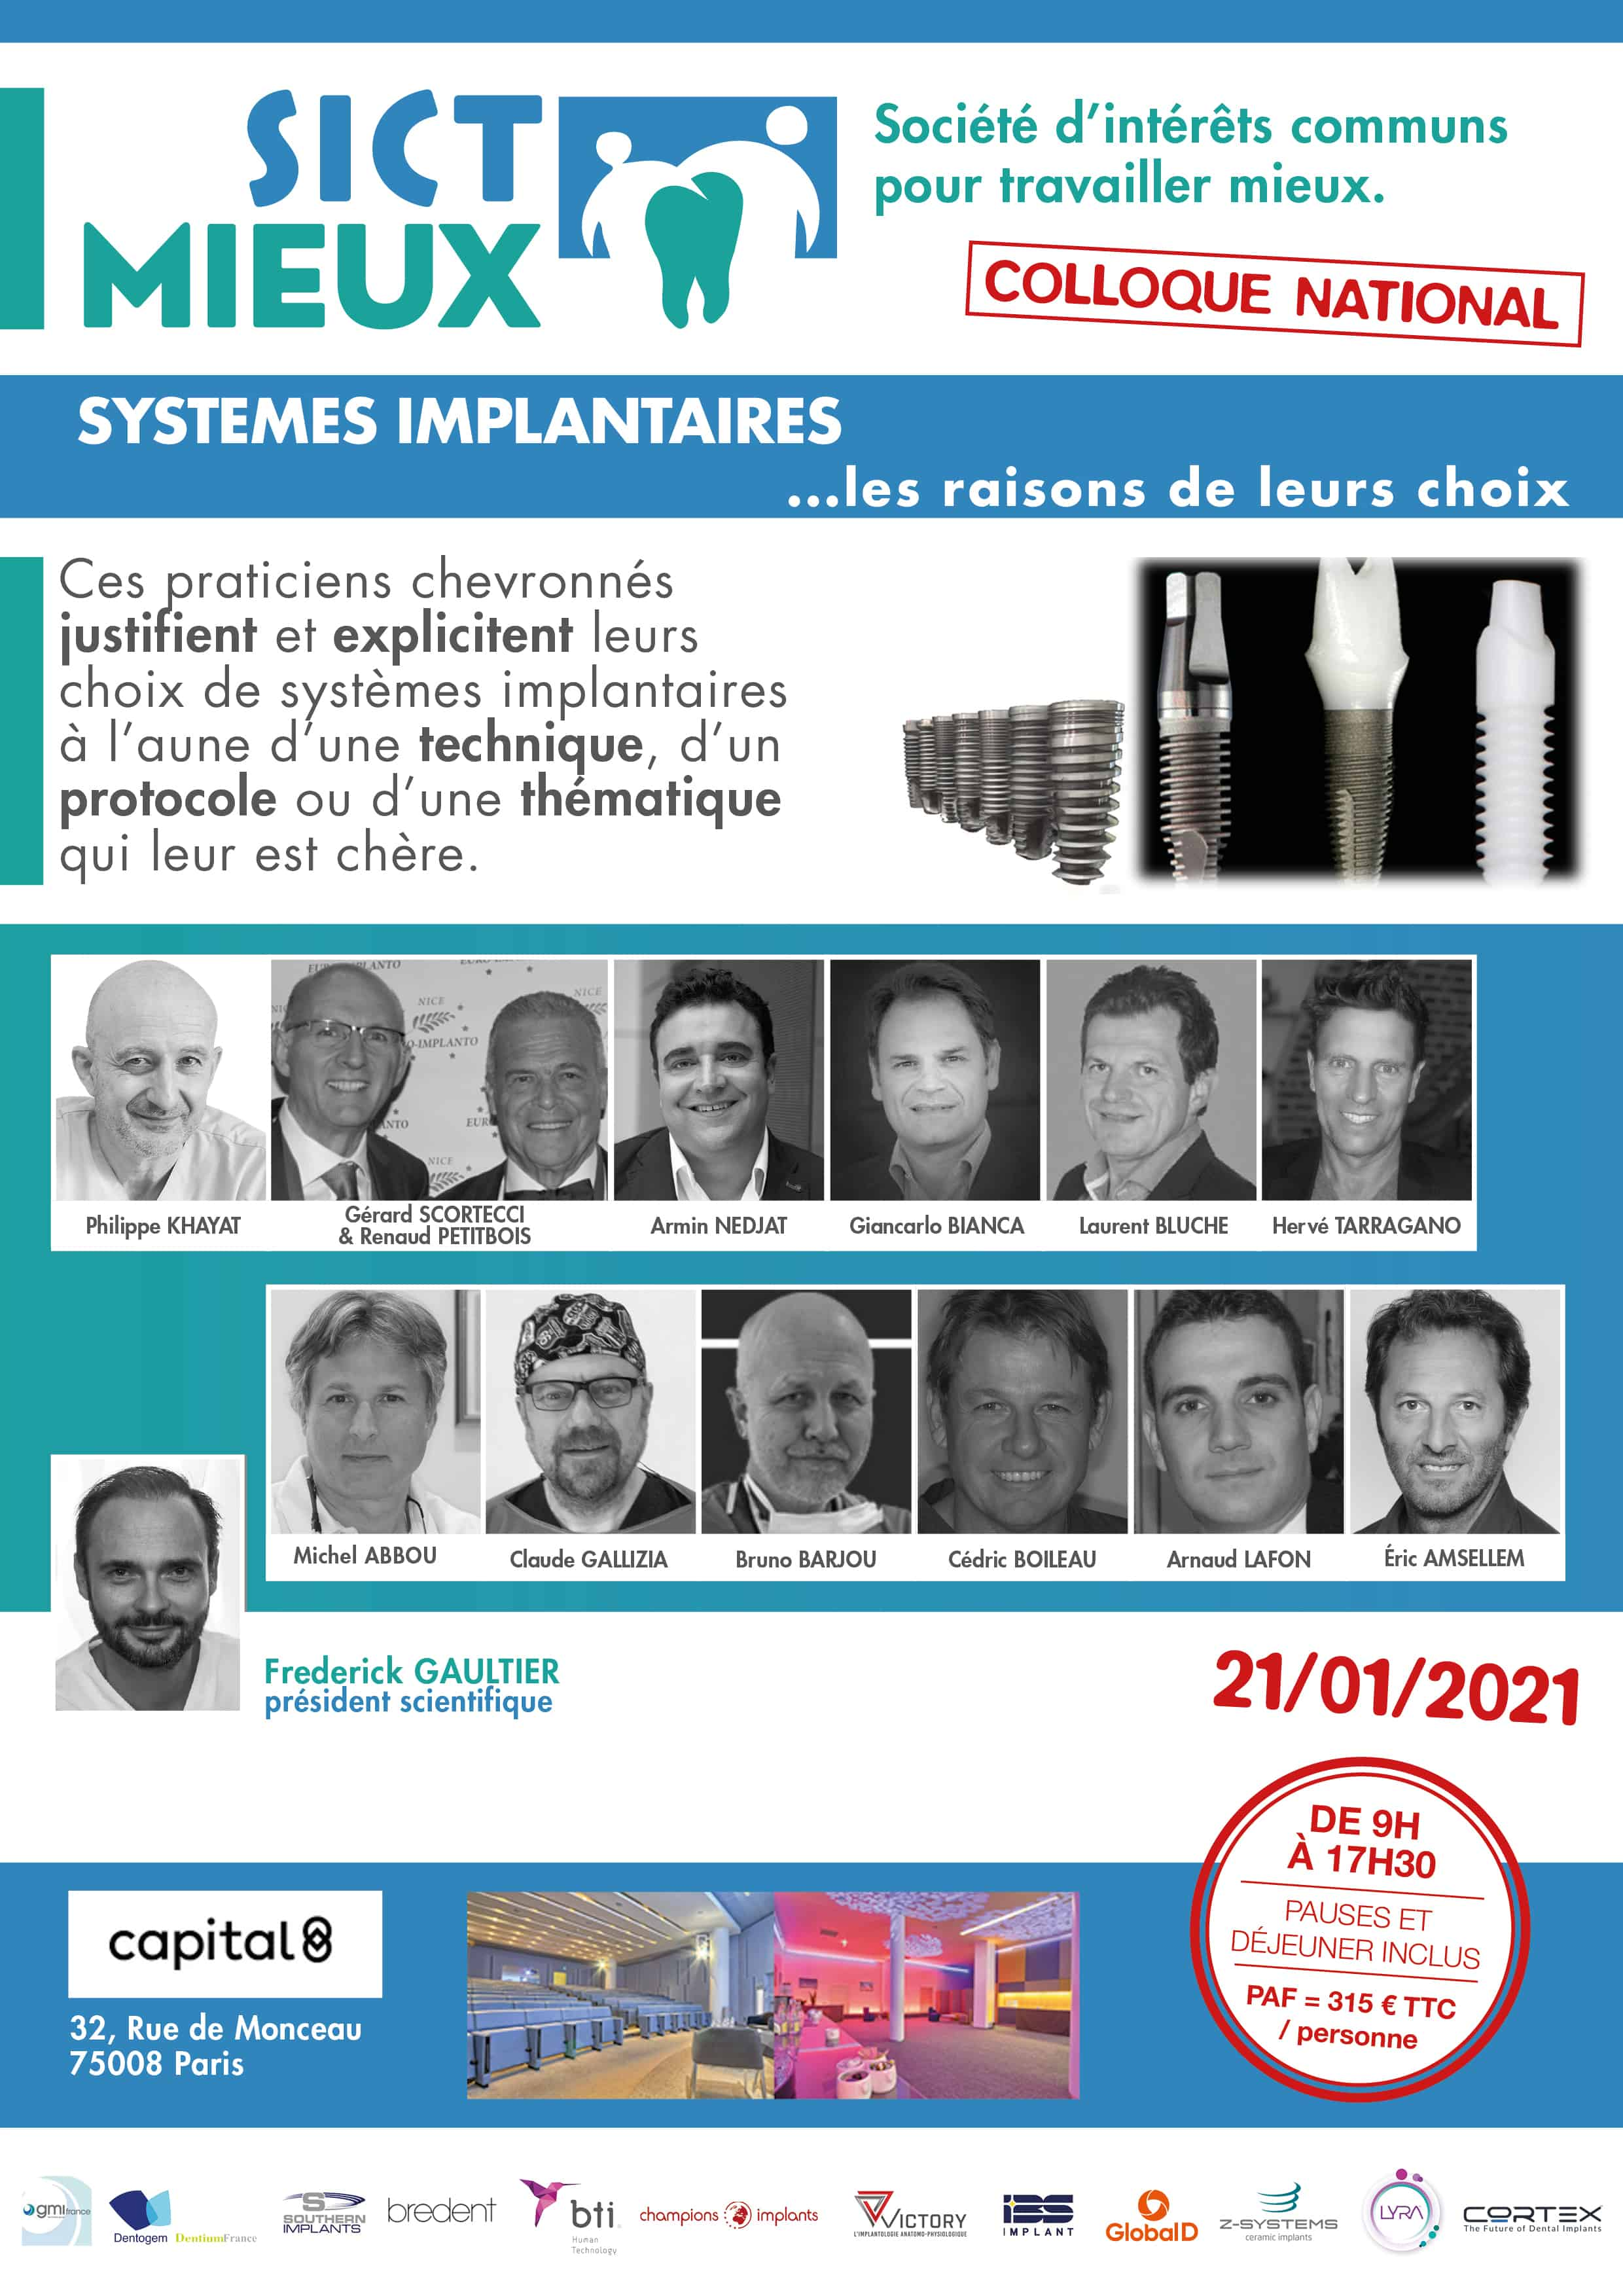 sictmieux - systemes implantaires web